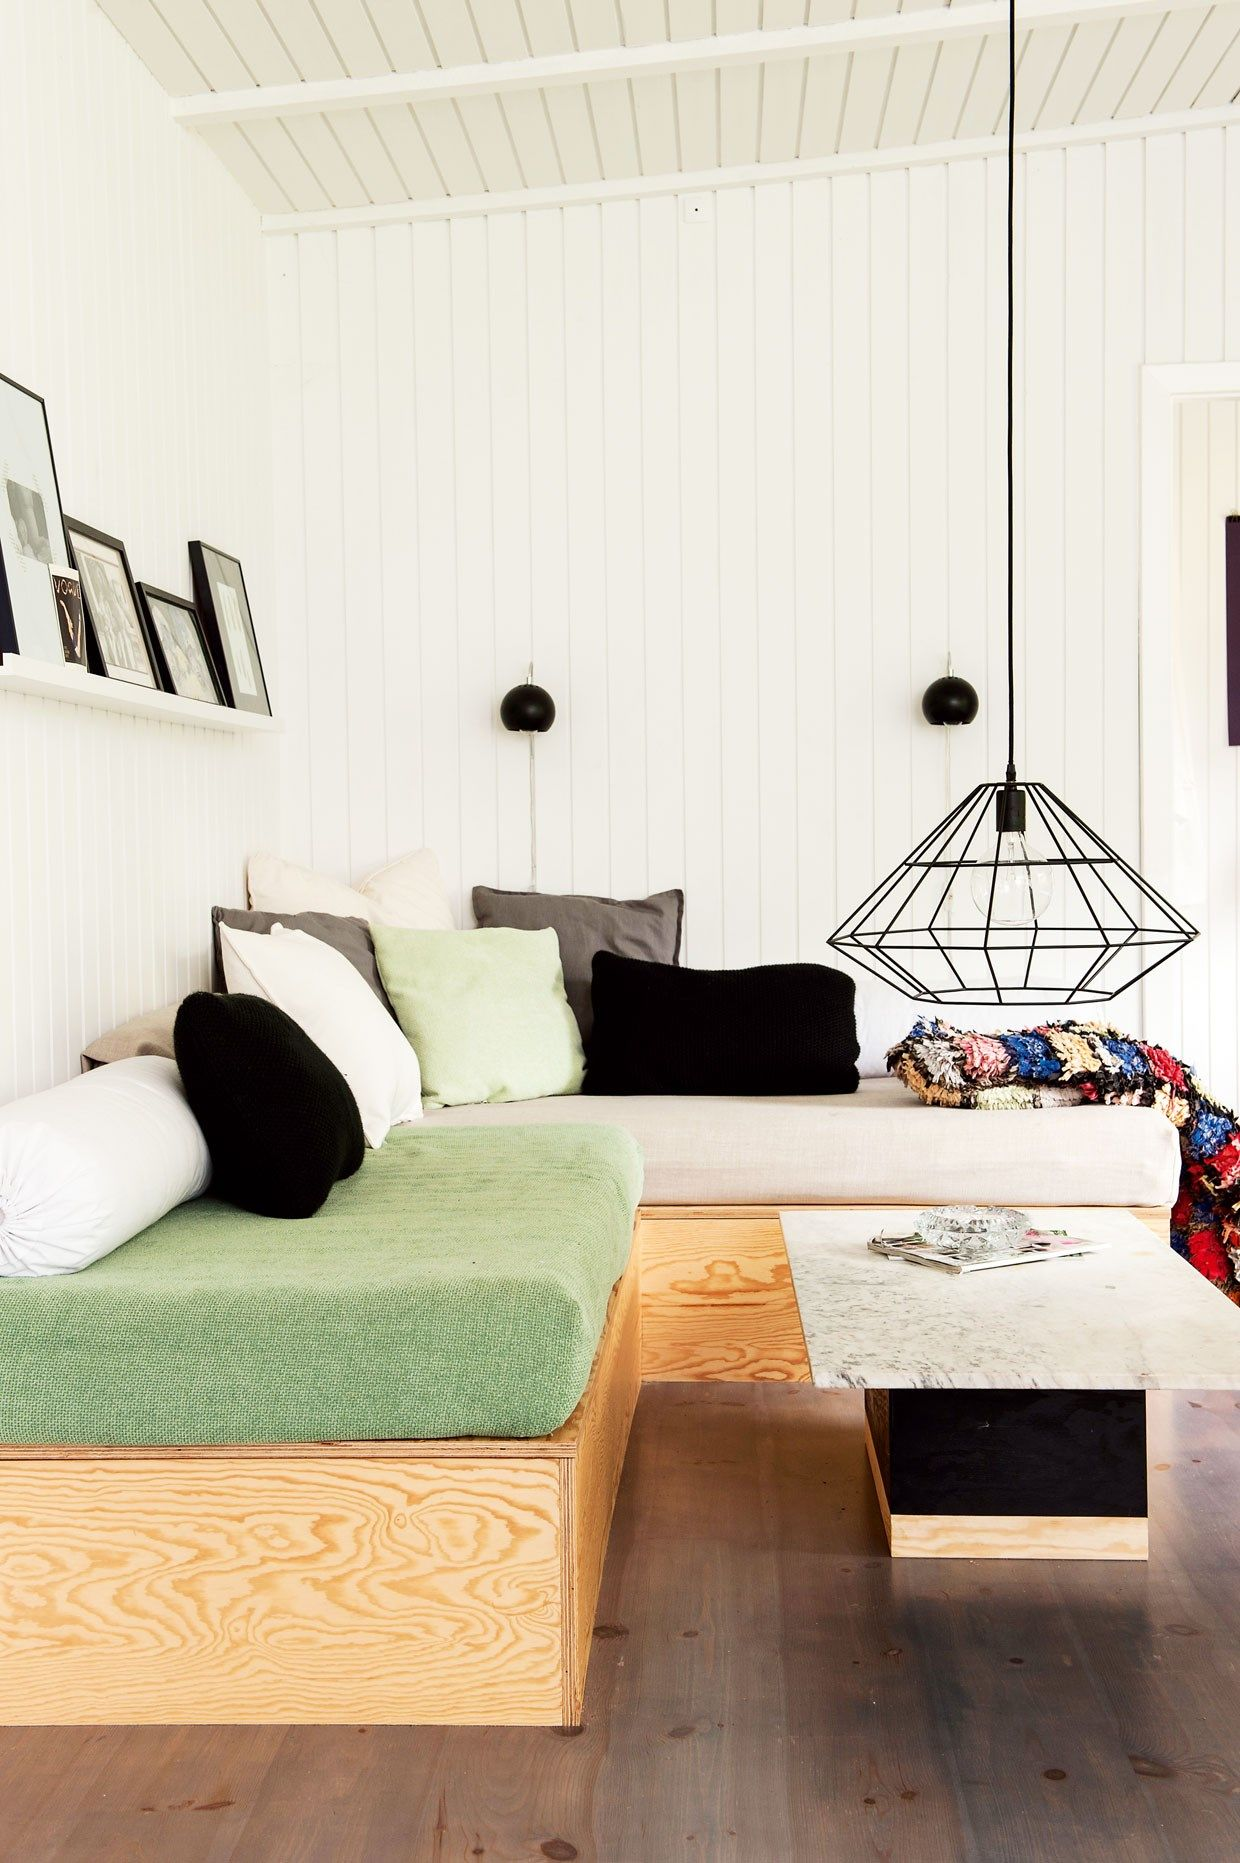 diy daybed sofas asda det gronne gemmested playroom living room sofa bankideetje comedor plads storage couch dyi